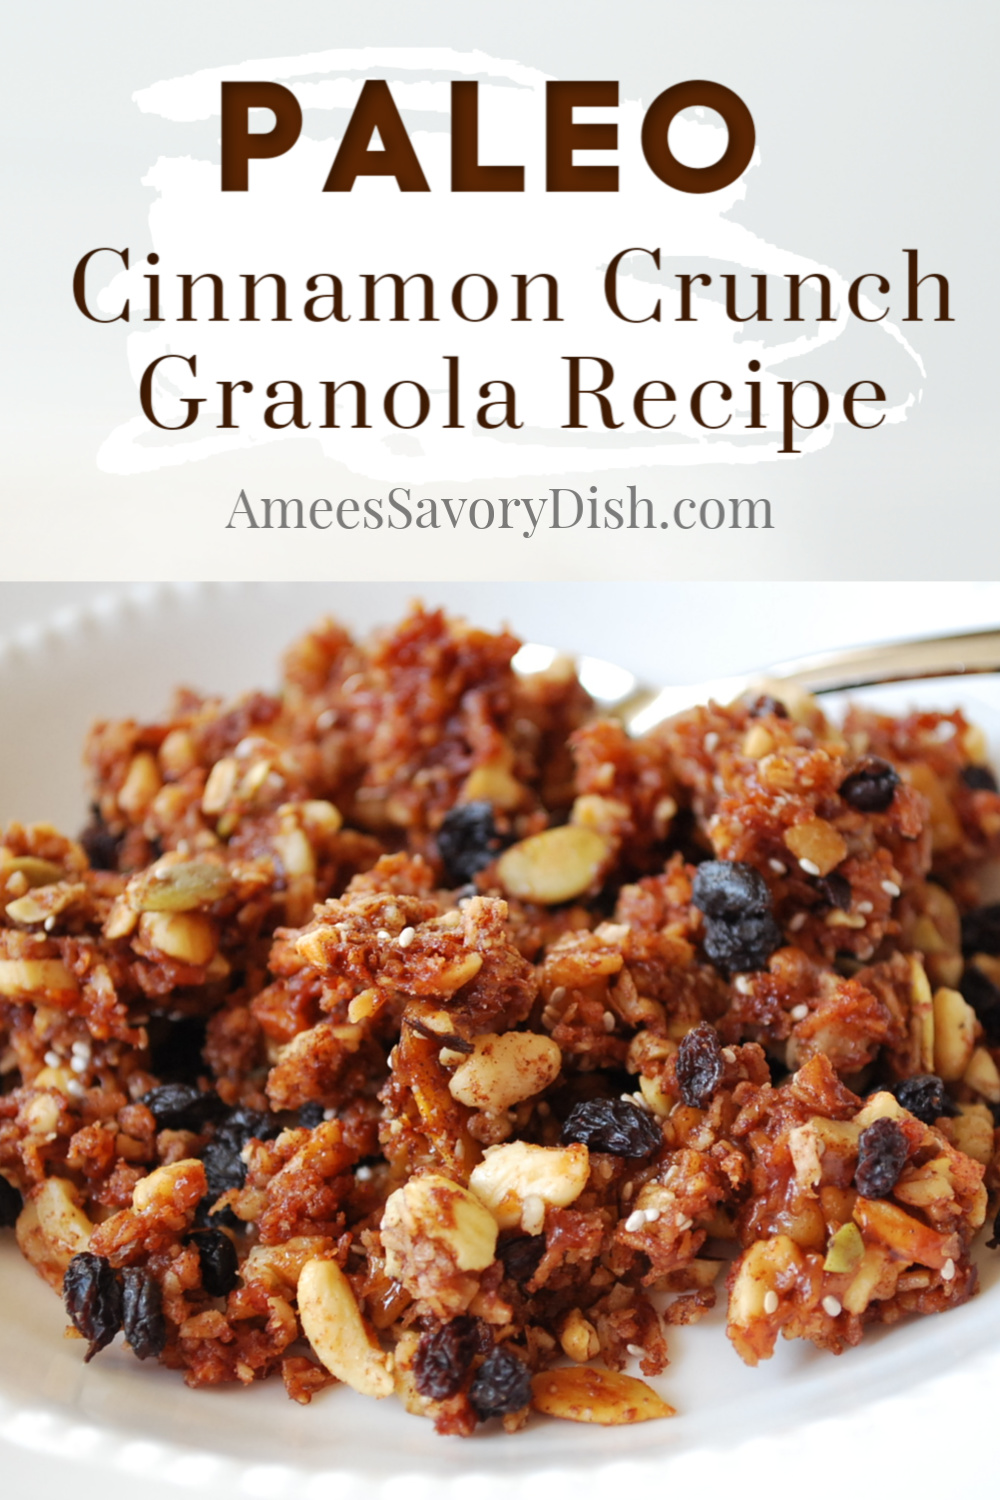 A delicious recipe for grain-free Paleo granola made with nuts, seeds, unsweetened coconut, honey, and dried fruit. Perfect for snacking or a hearty breakfast meal. via @Ameessavorydish